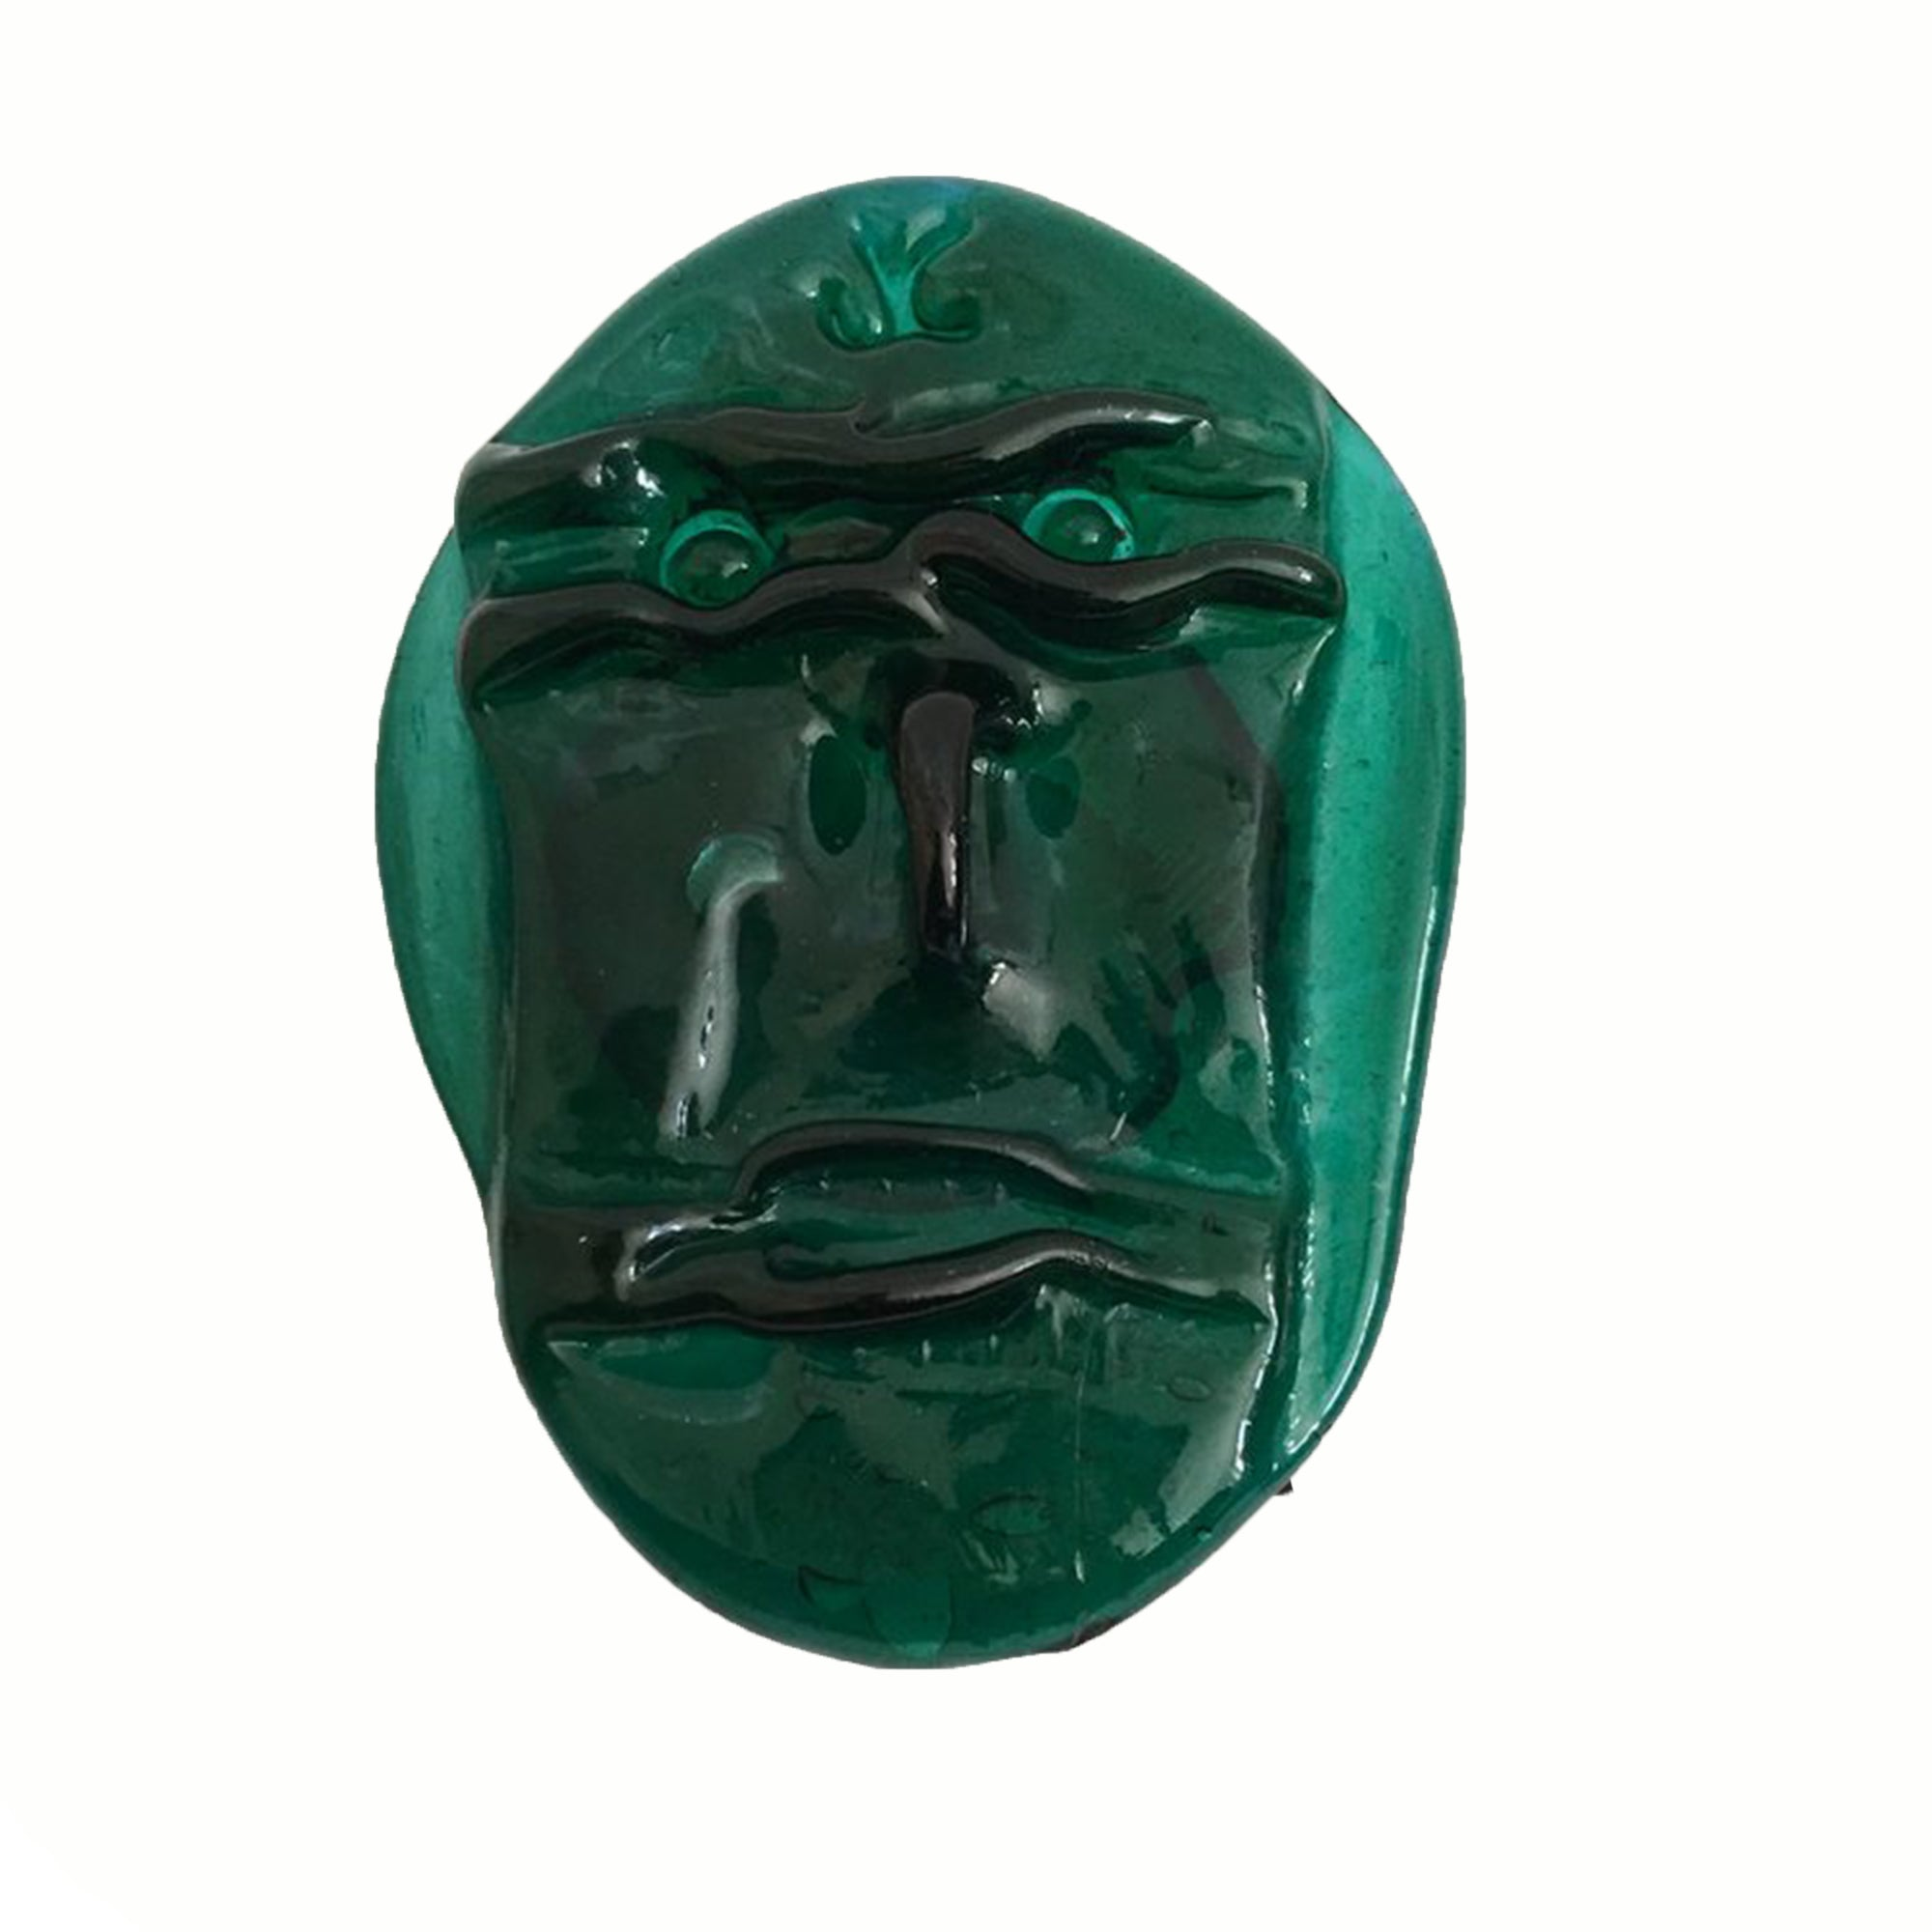 GREEN GLASS FACE